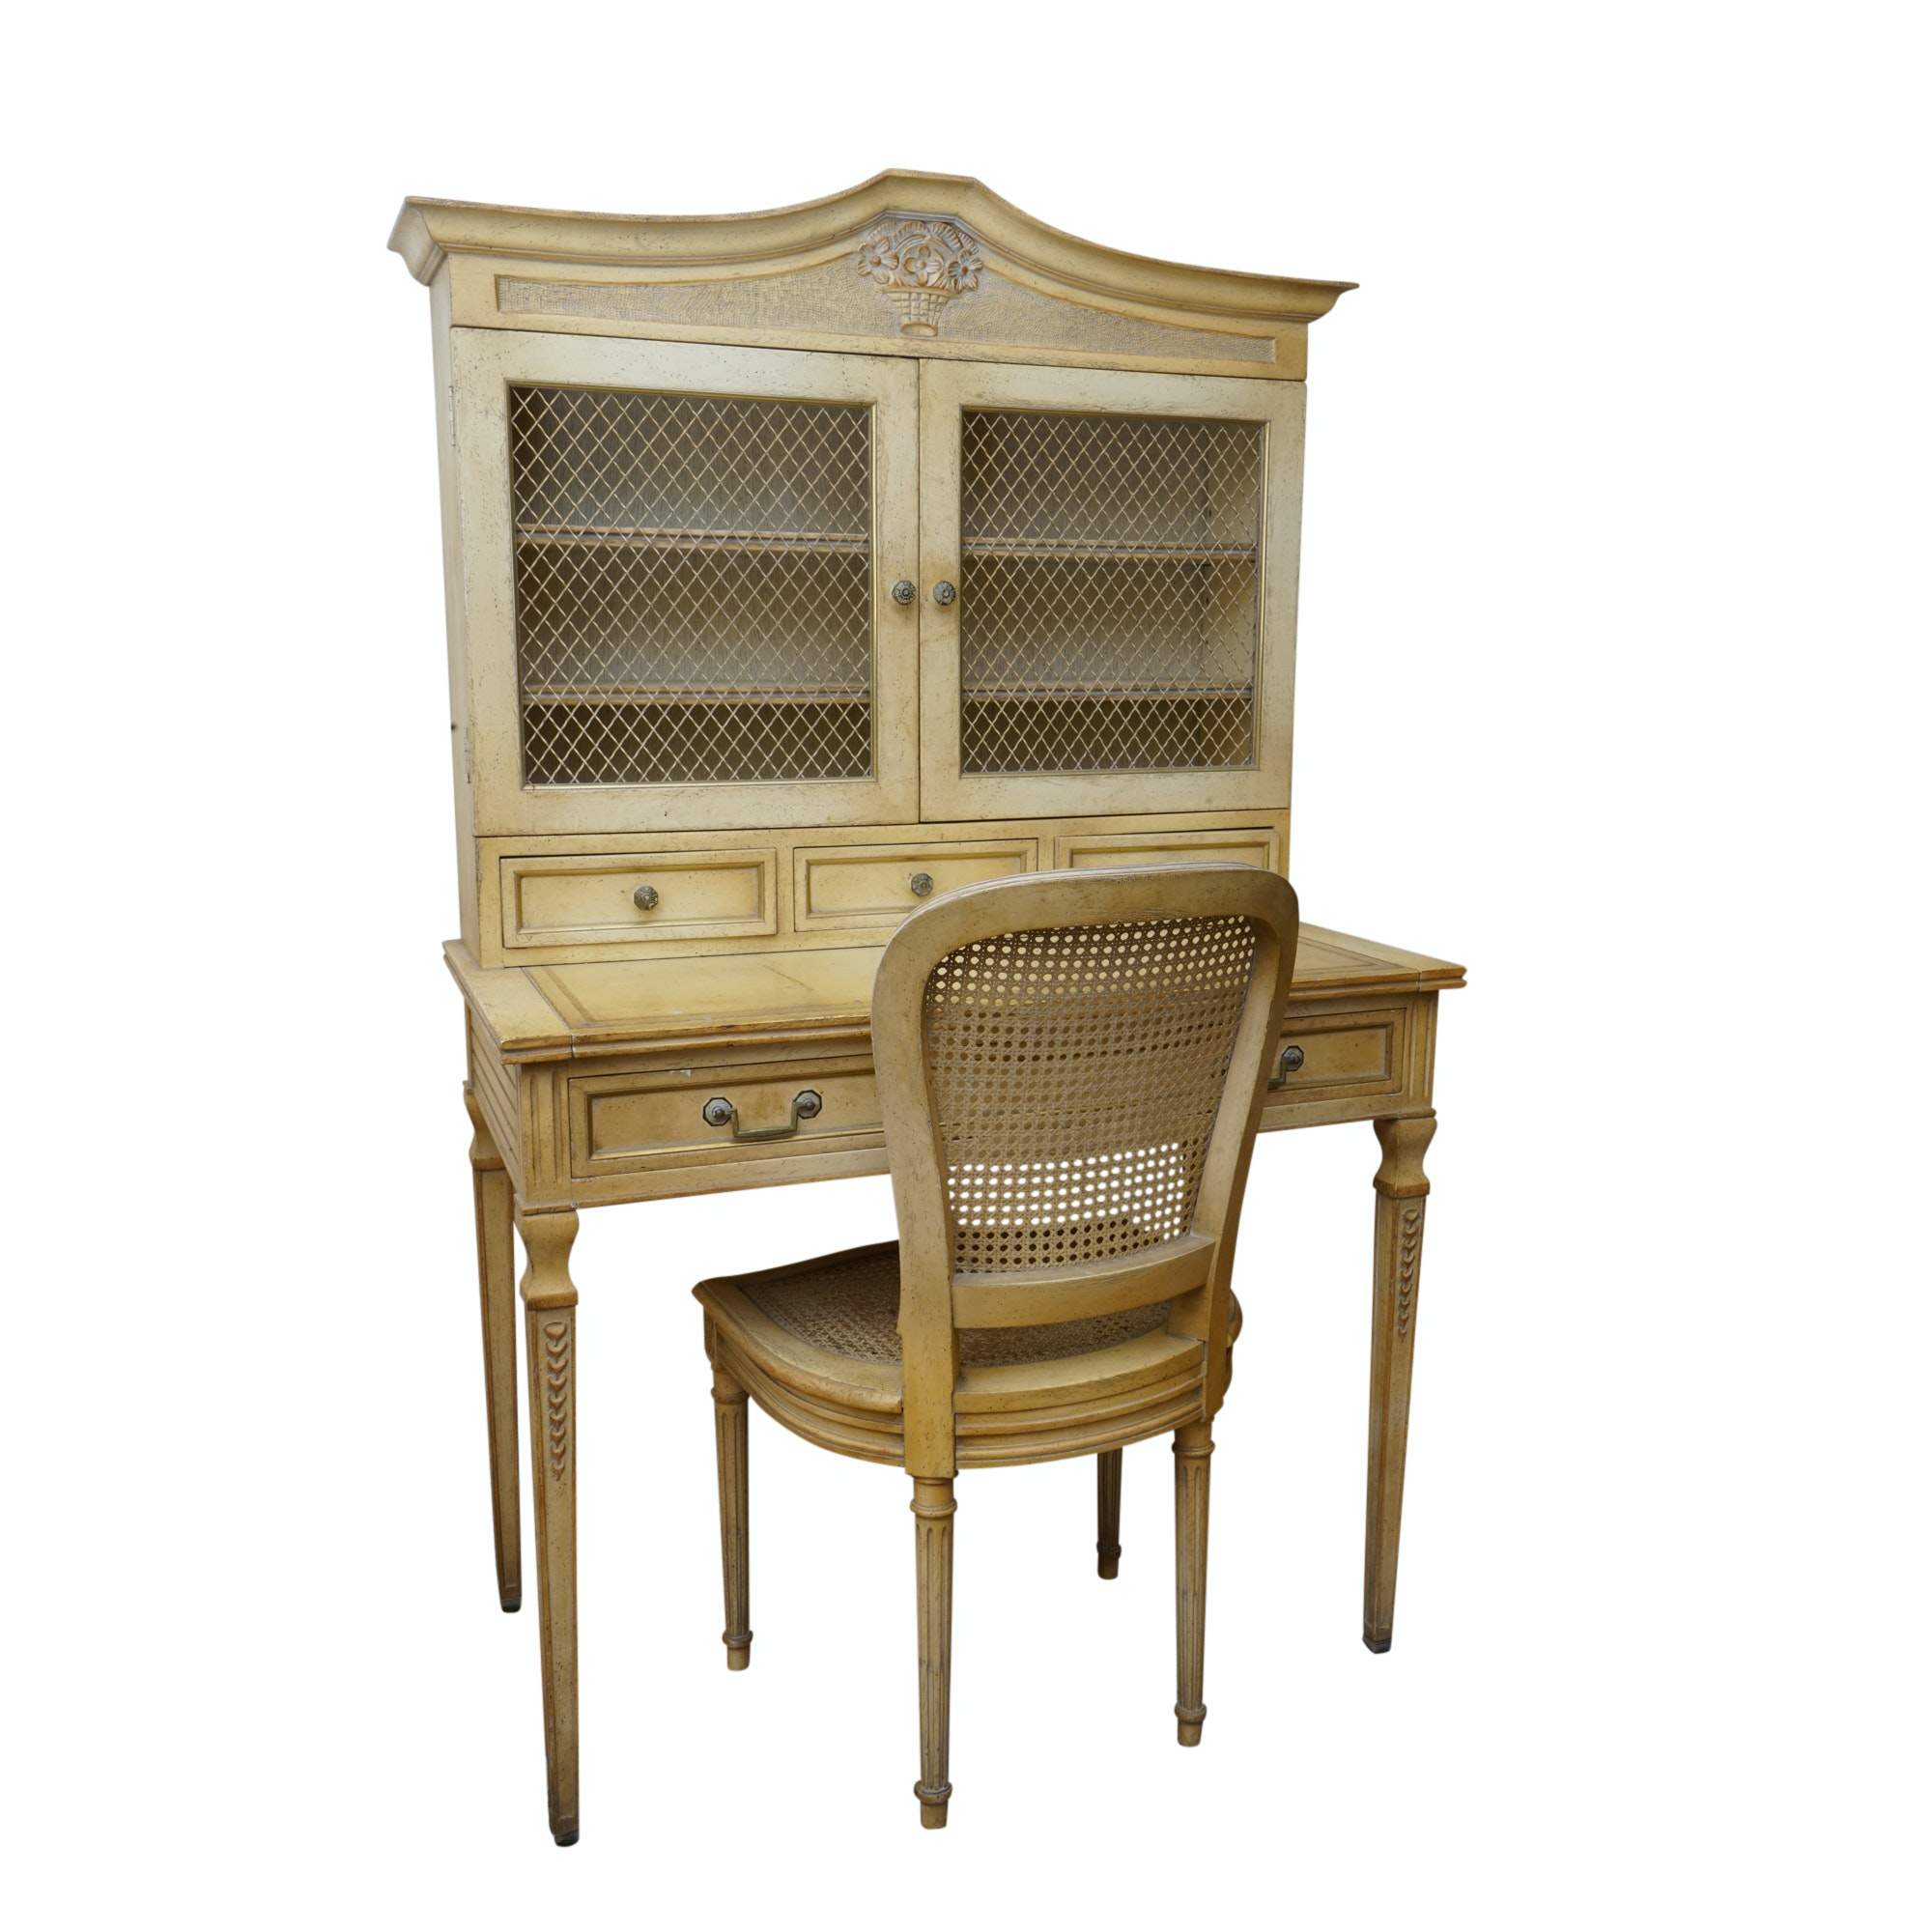 French Regency Style Secretary with Caned Chair